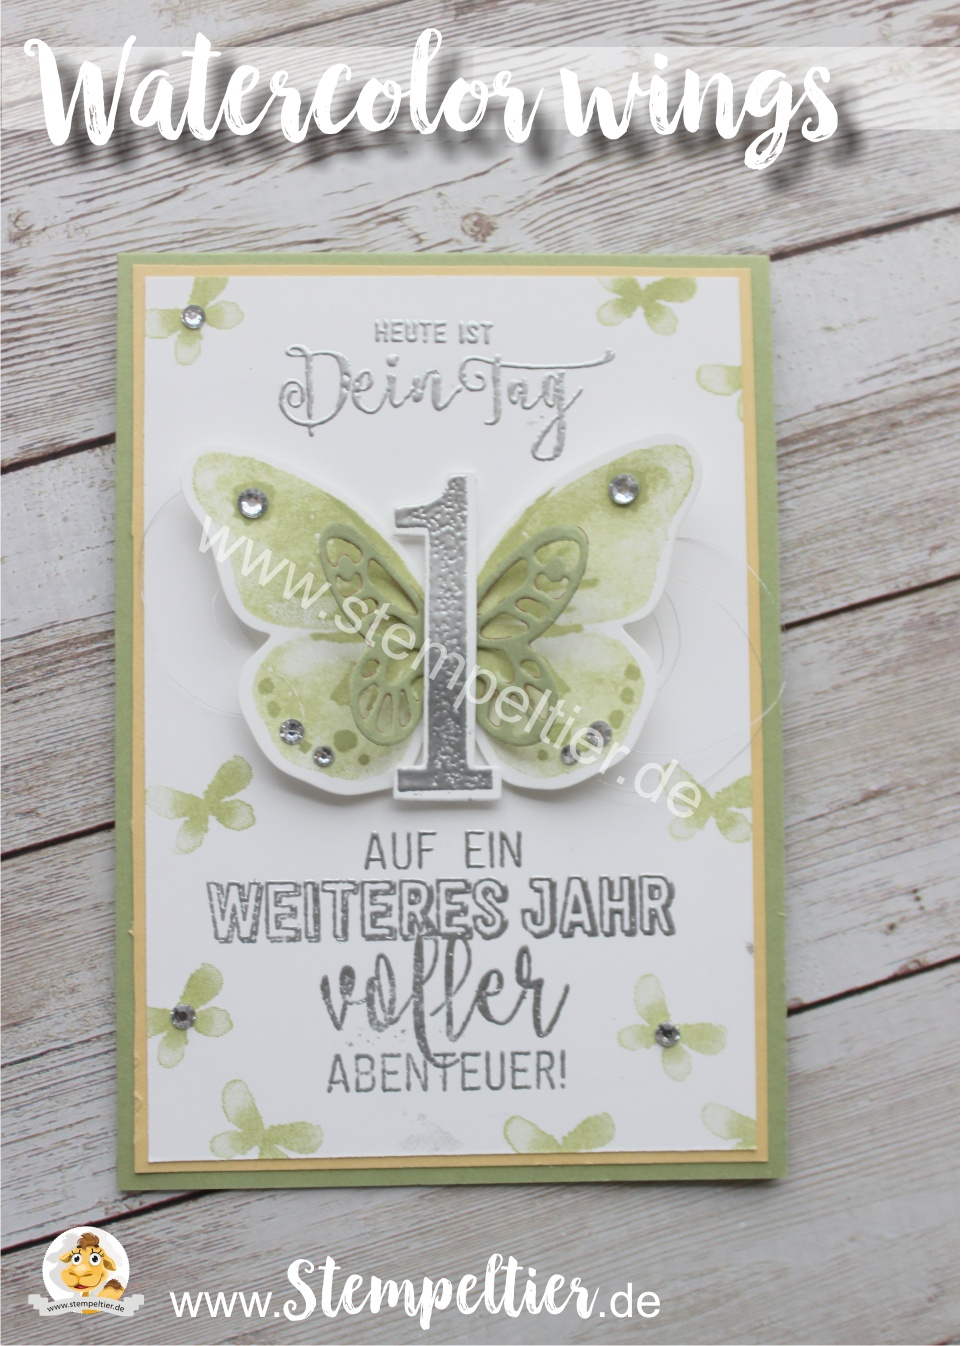 stampin up watercolor wings ballonparty demo geburtstag stempeltier blog